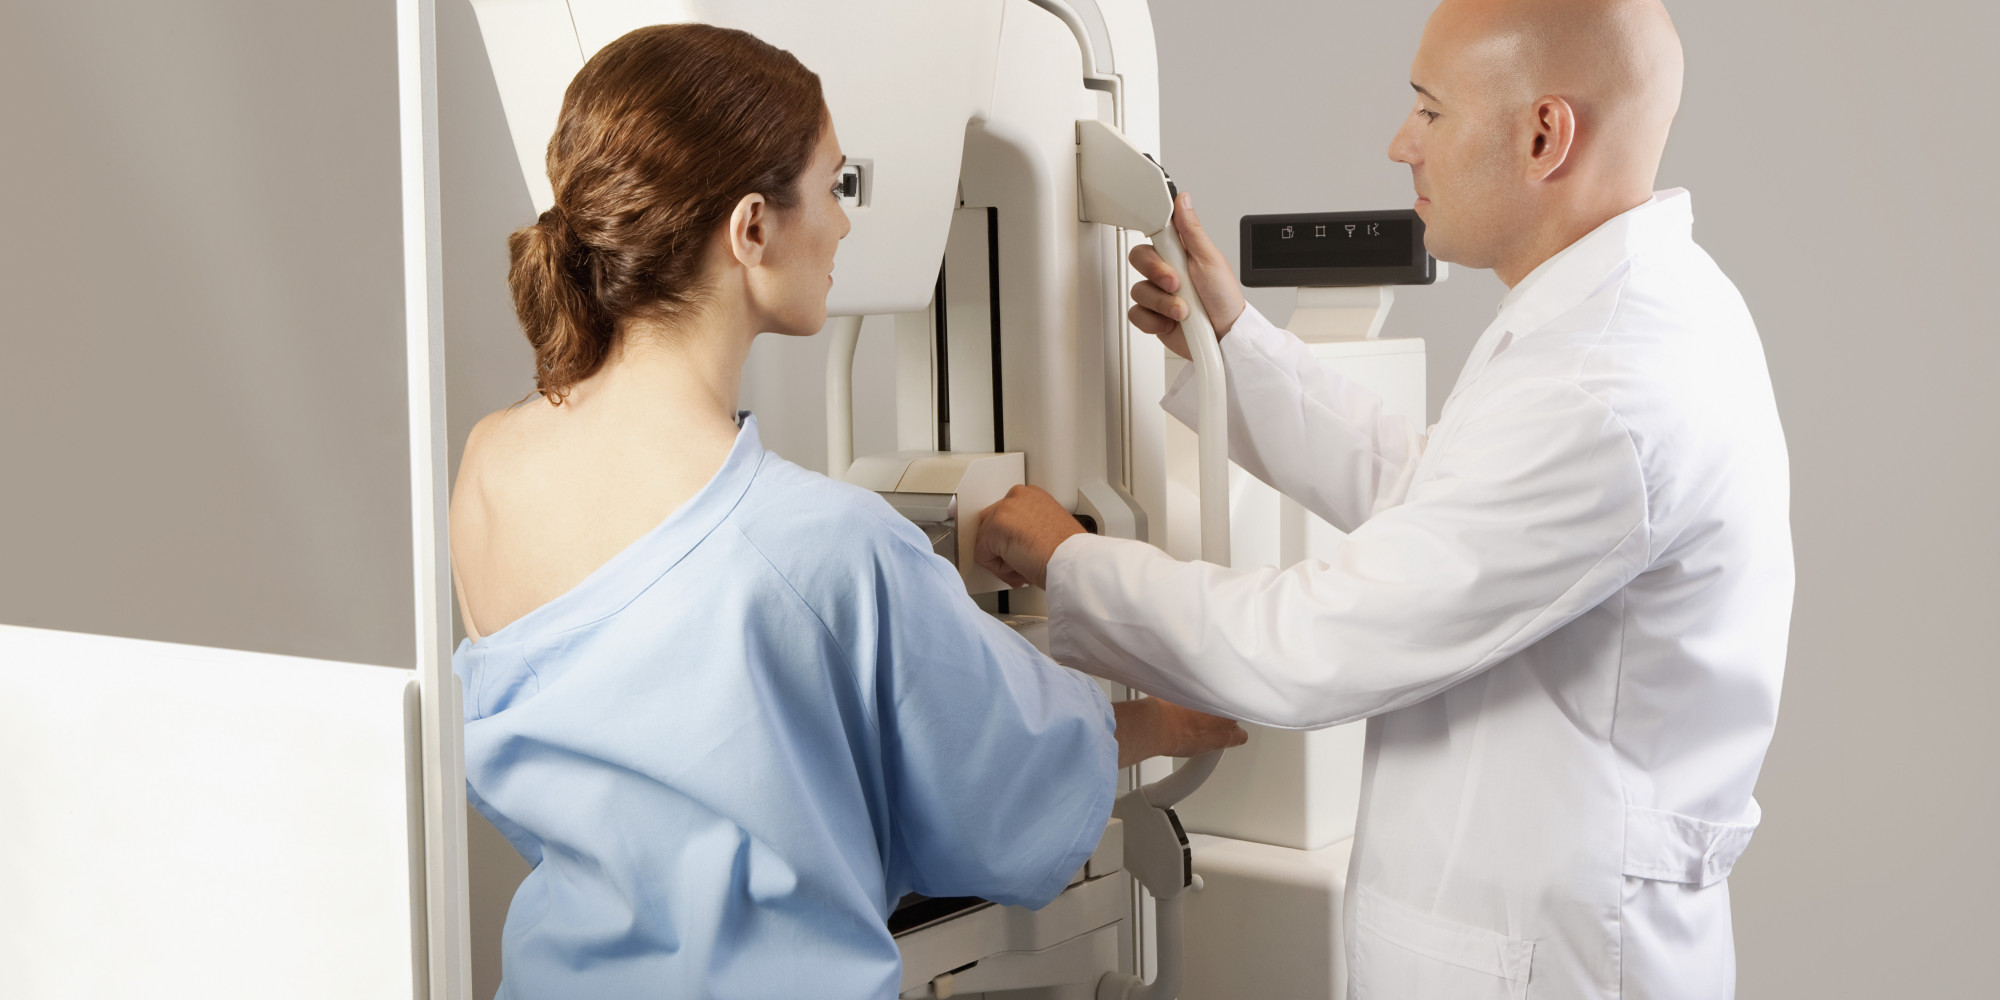 Quick Facts About Breast Cancer